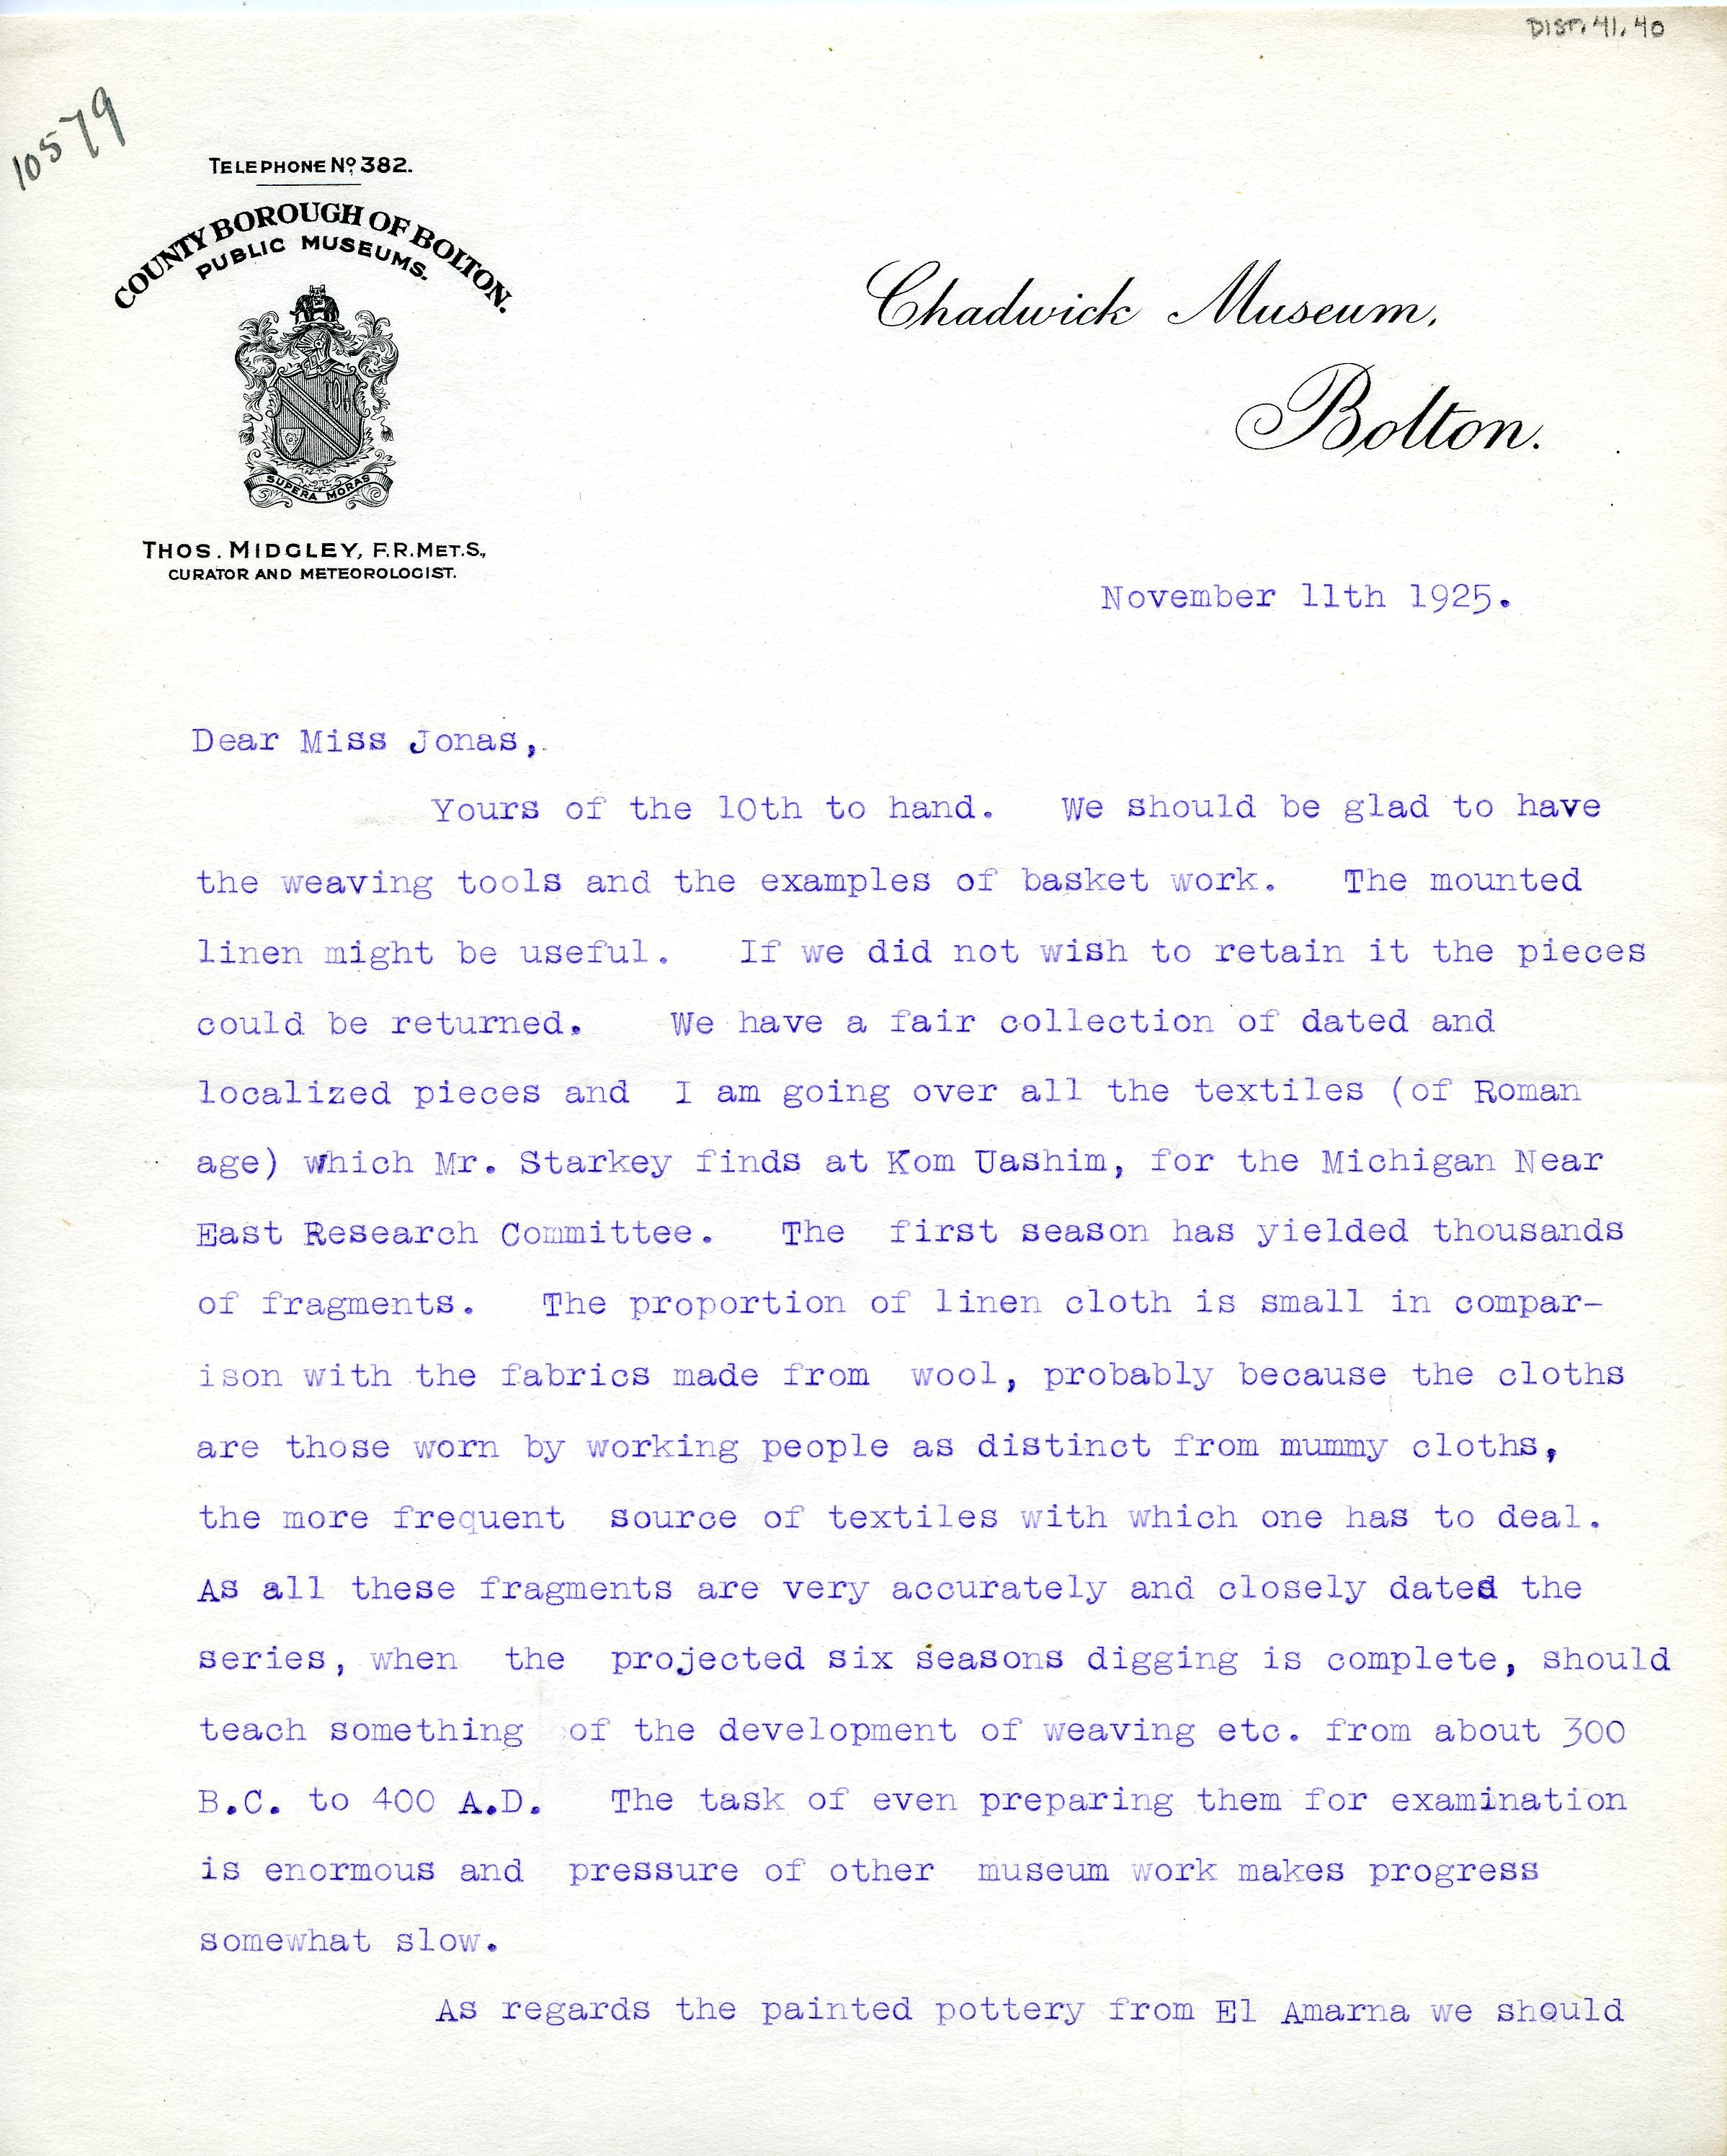 1922-76 Miscellaneous correspondence with museums DIST.41.40a